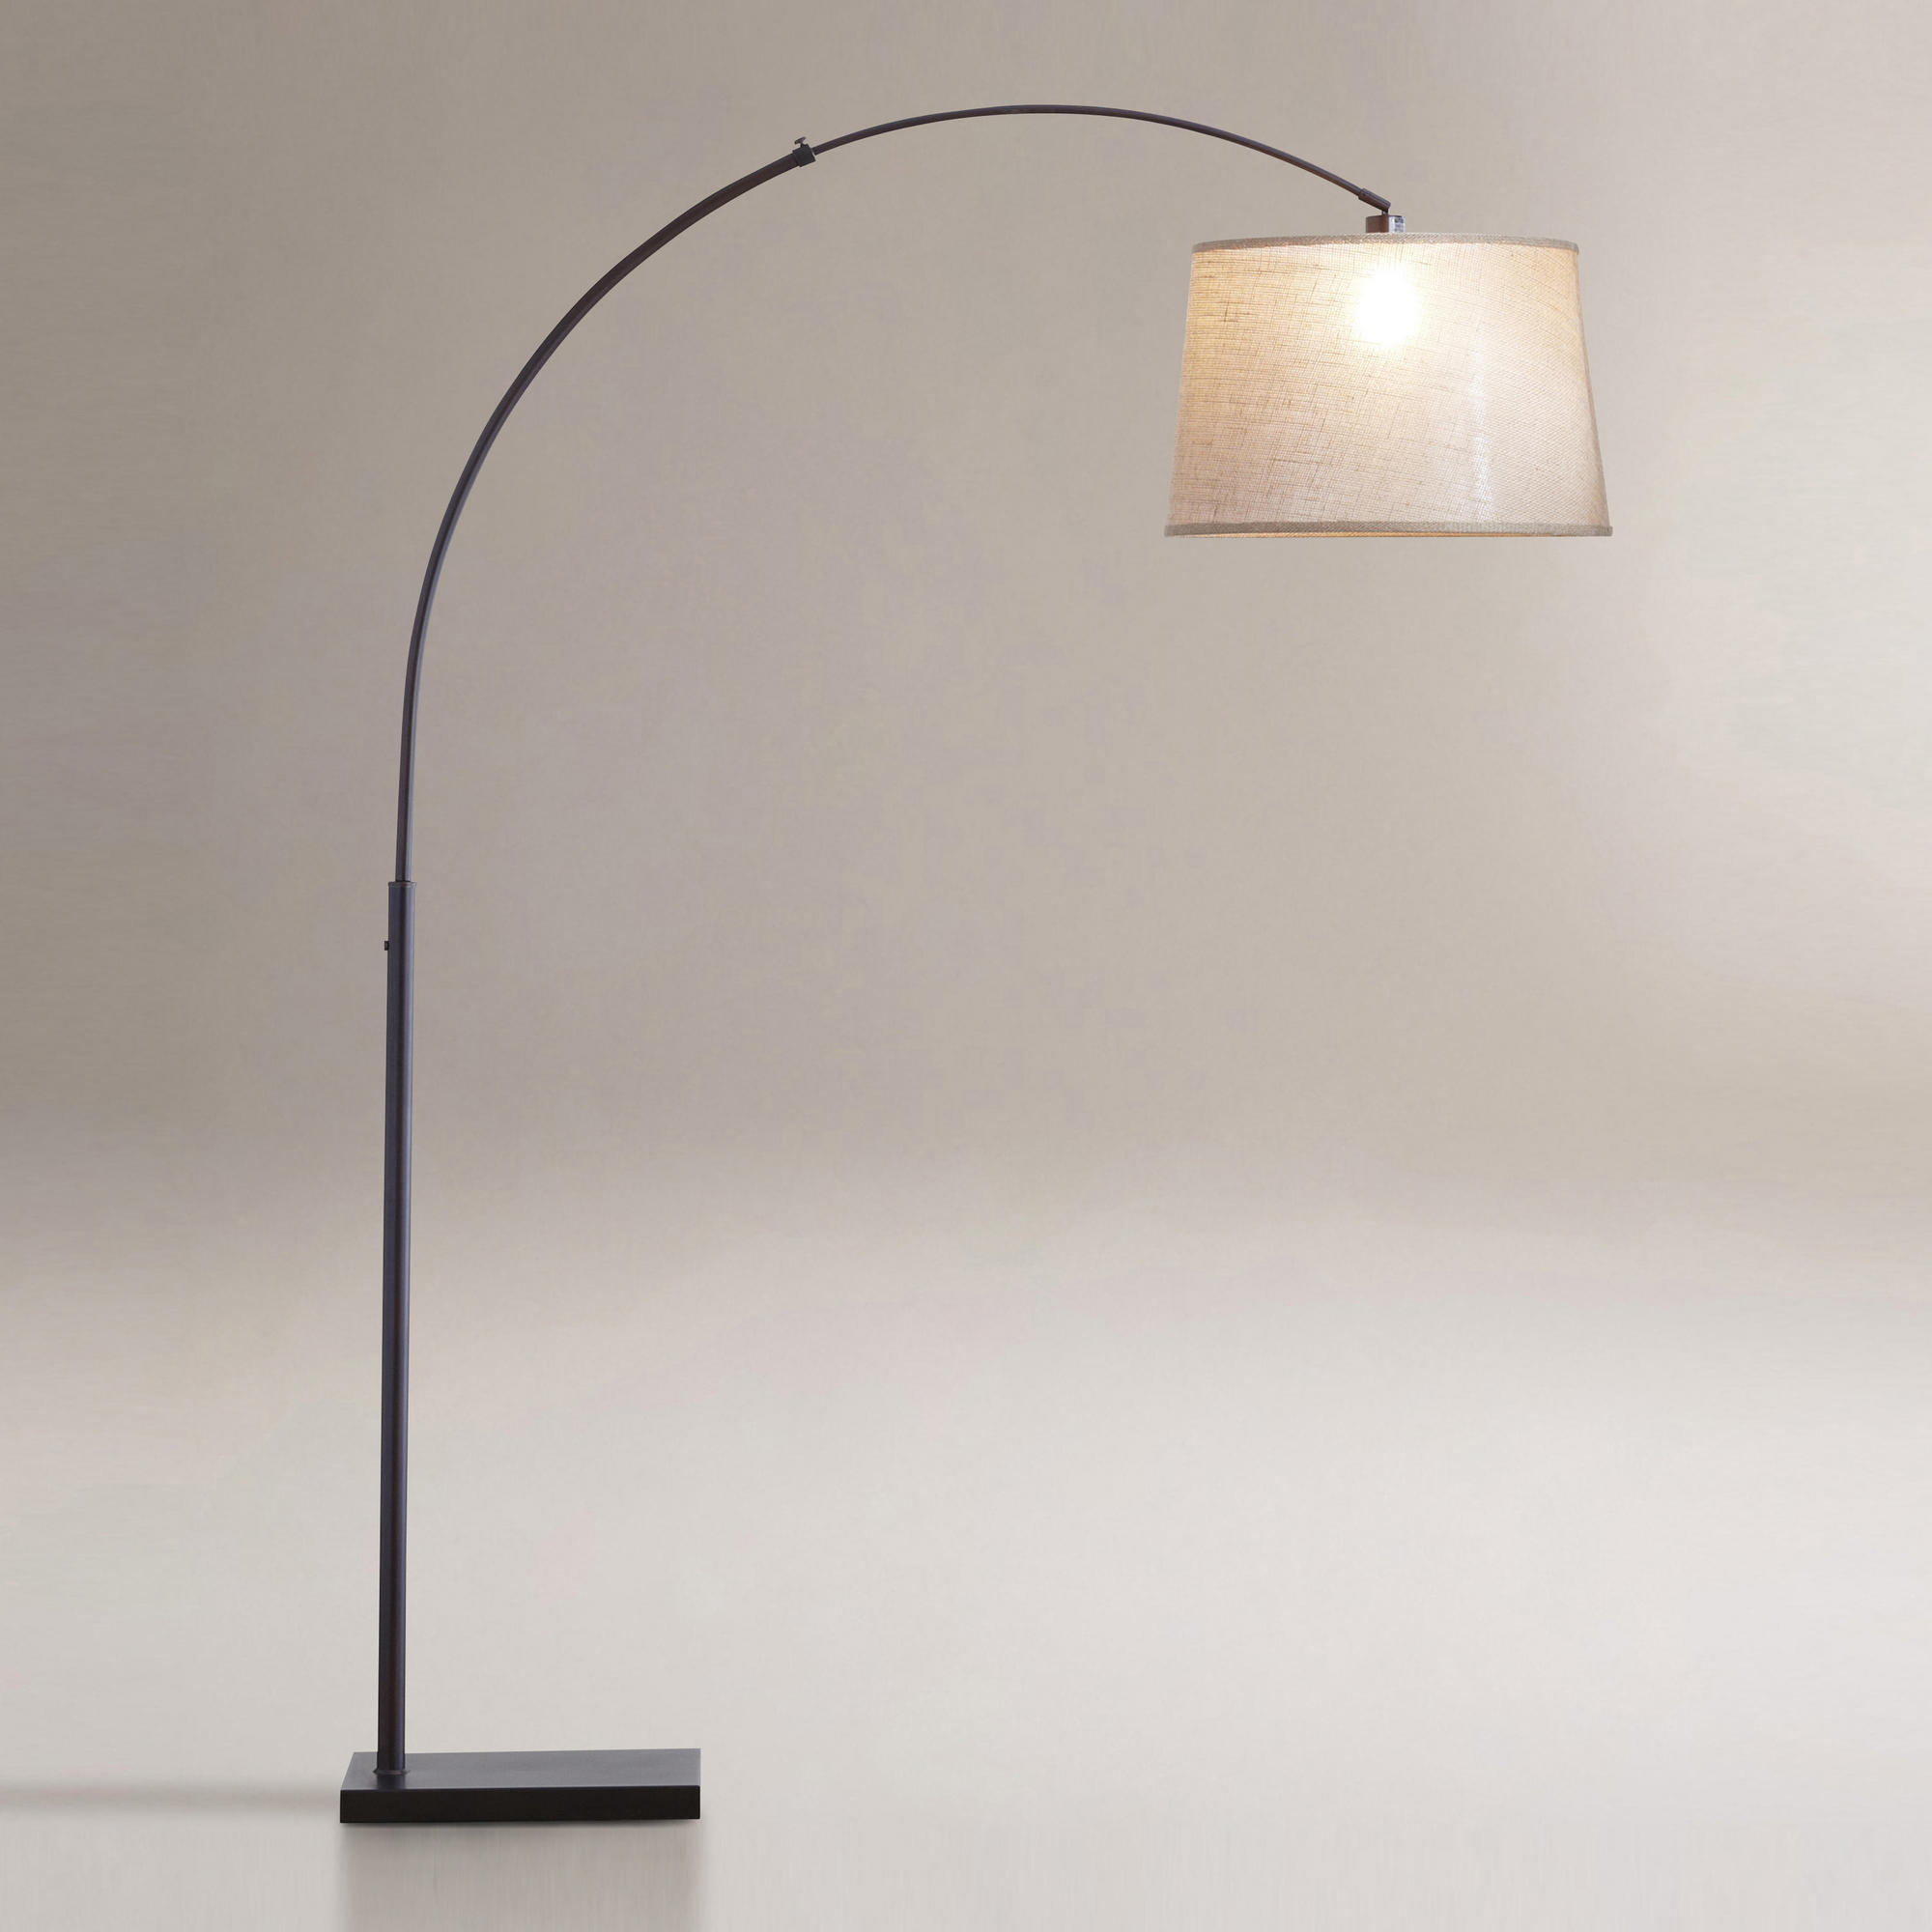 Save space in your room with small floor lamps warisan lighting affordable lights mozeypictures Gallery